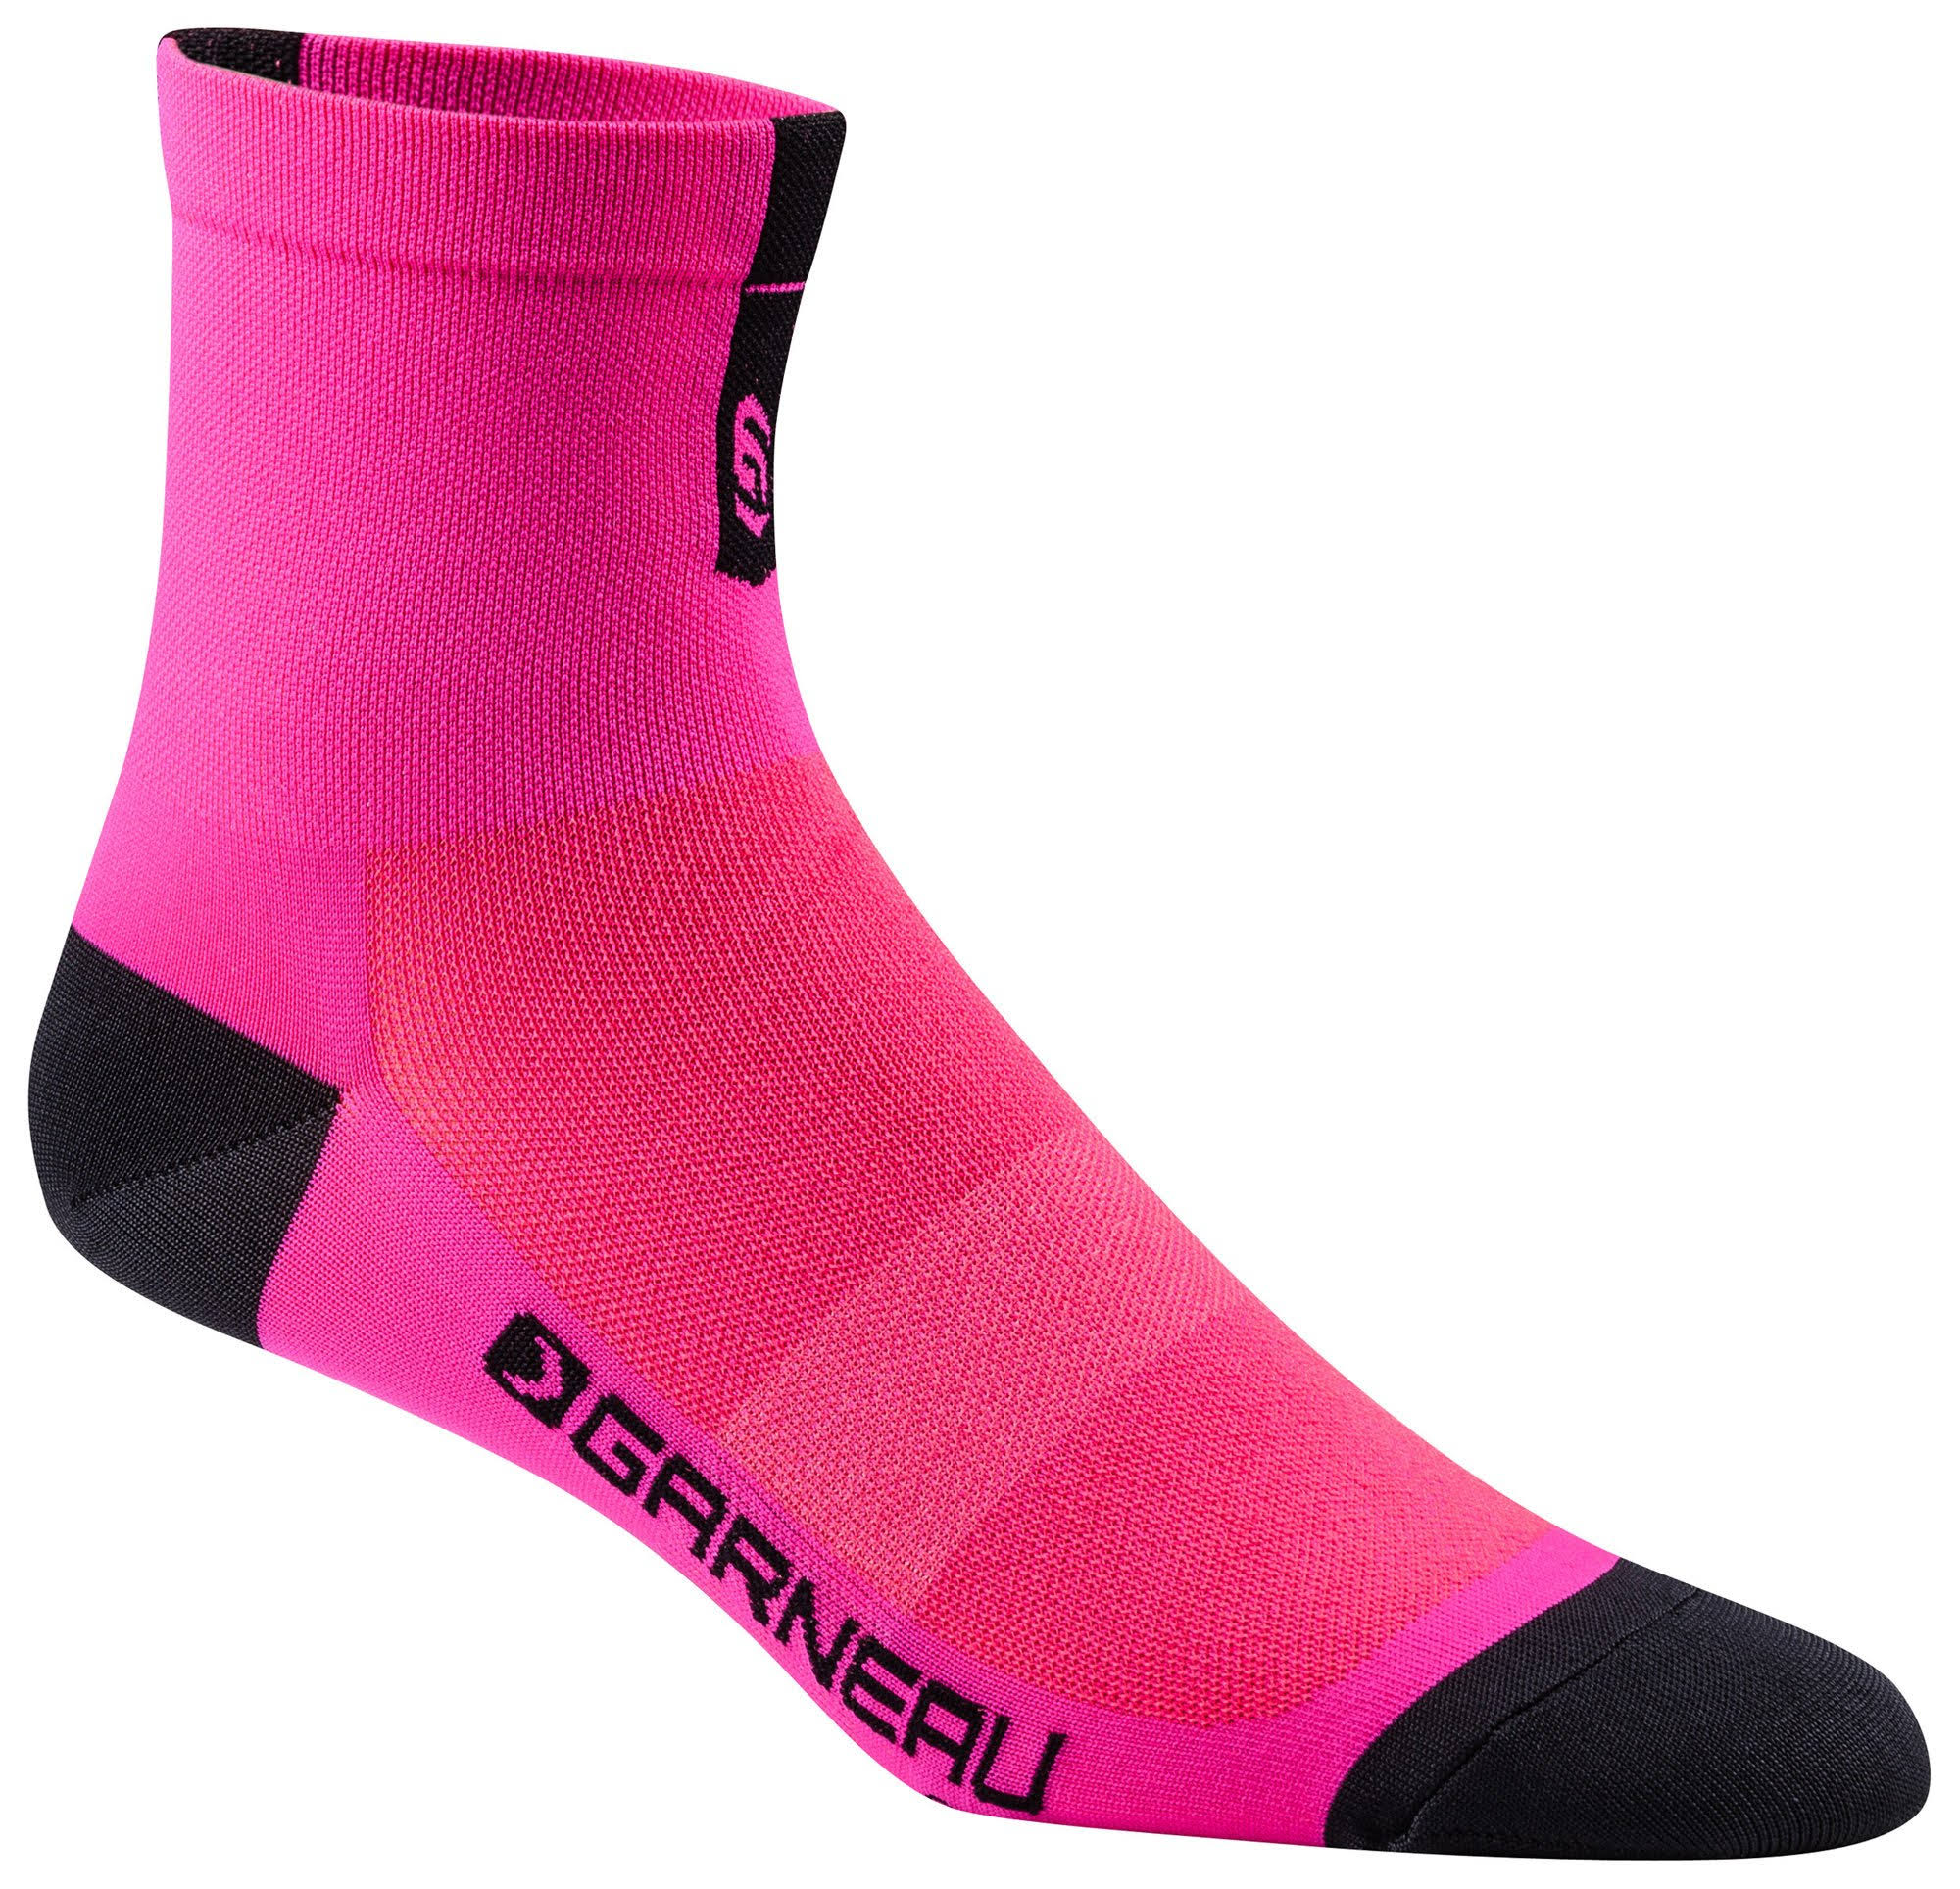 Louis Garneau Conti Cycling Socks - Black, Large/XLarge